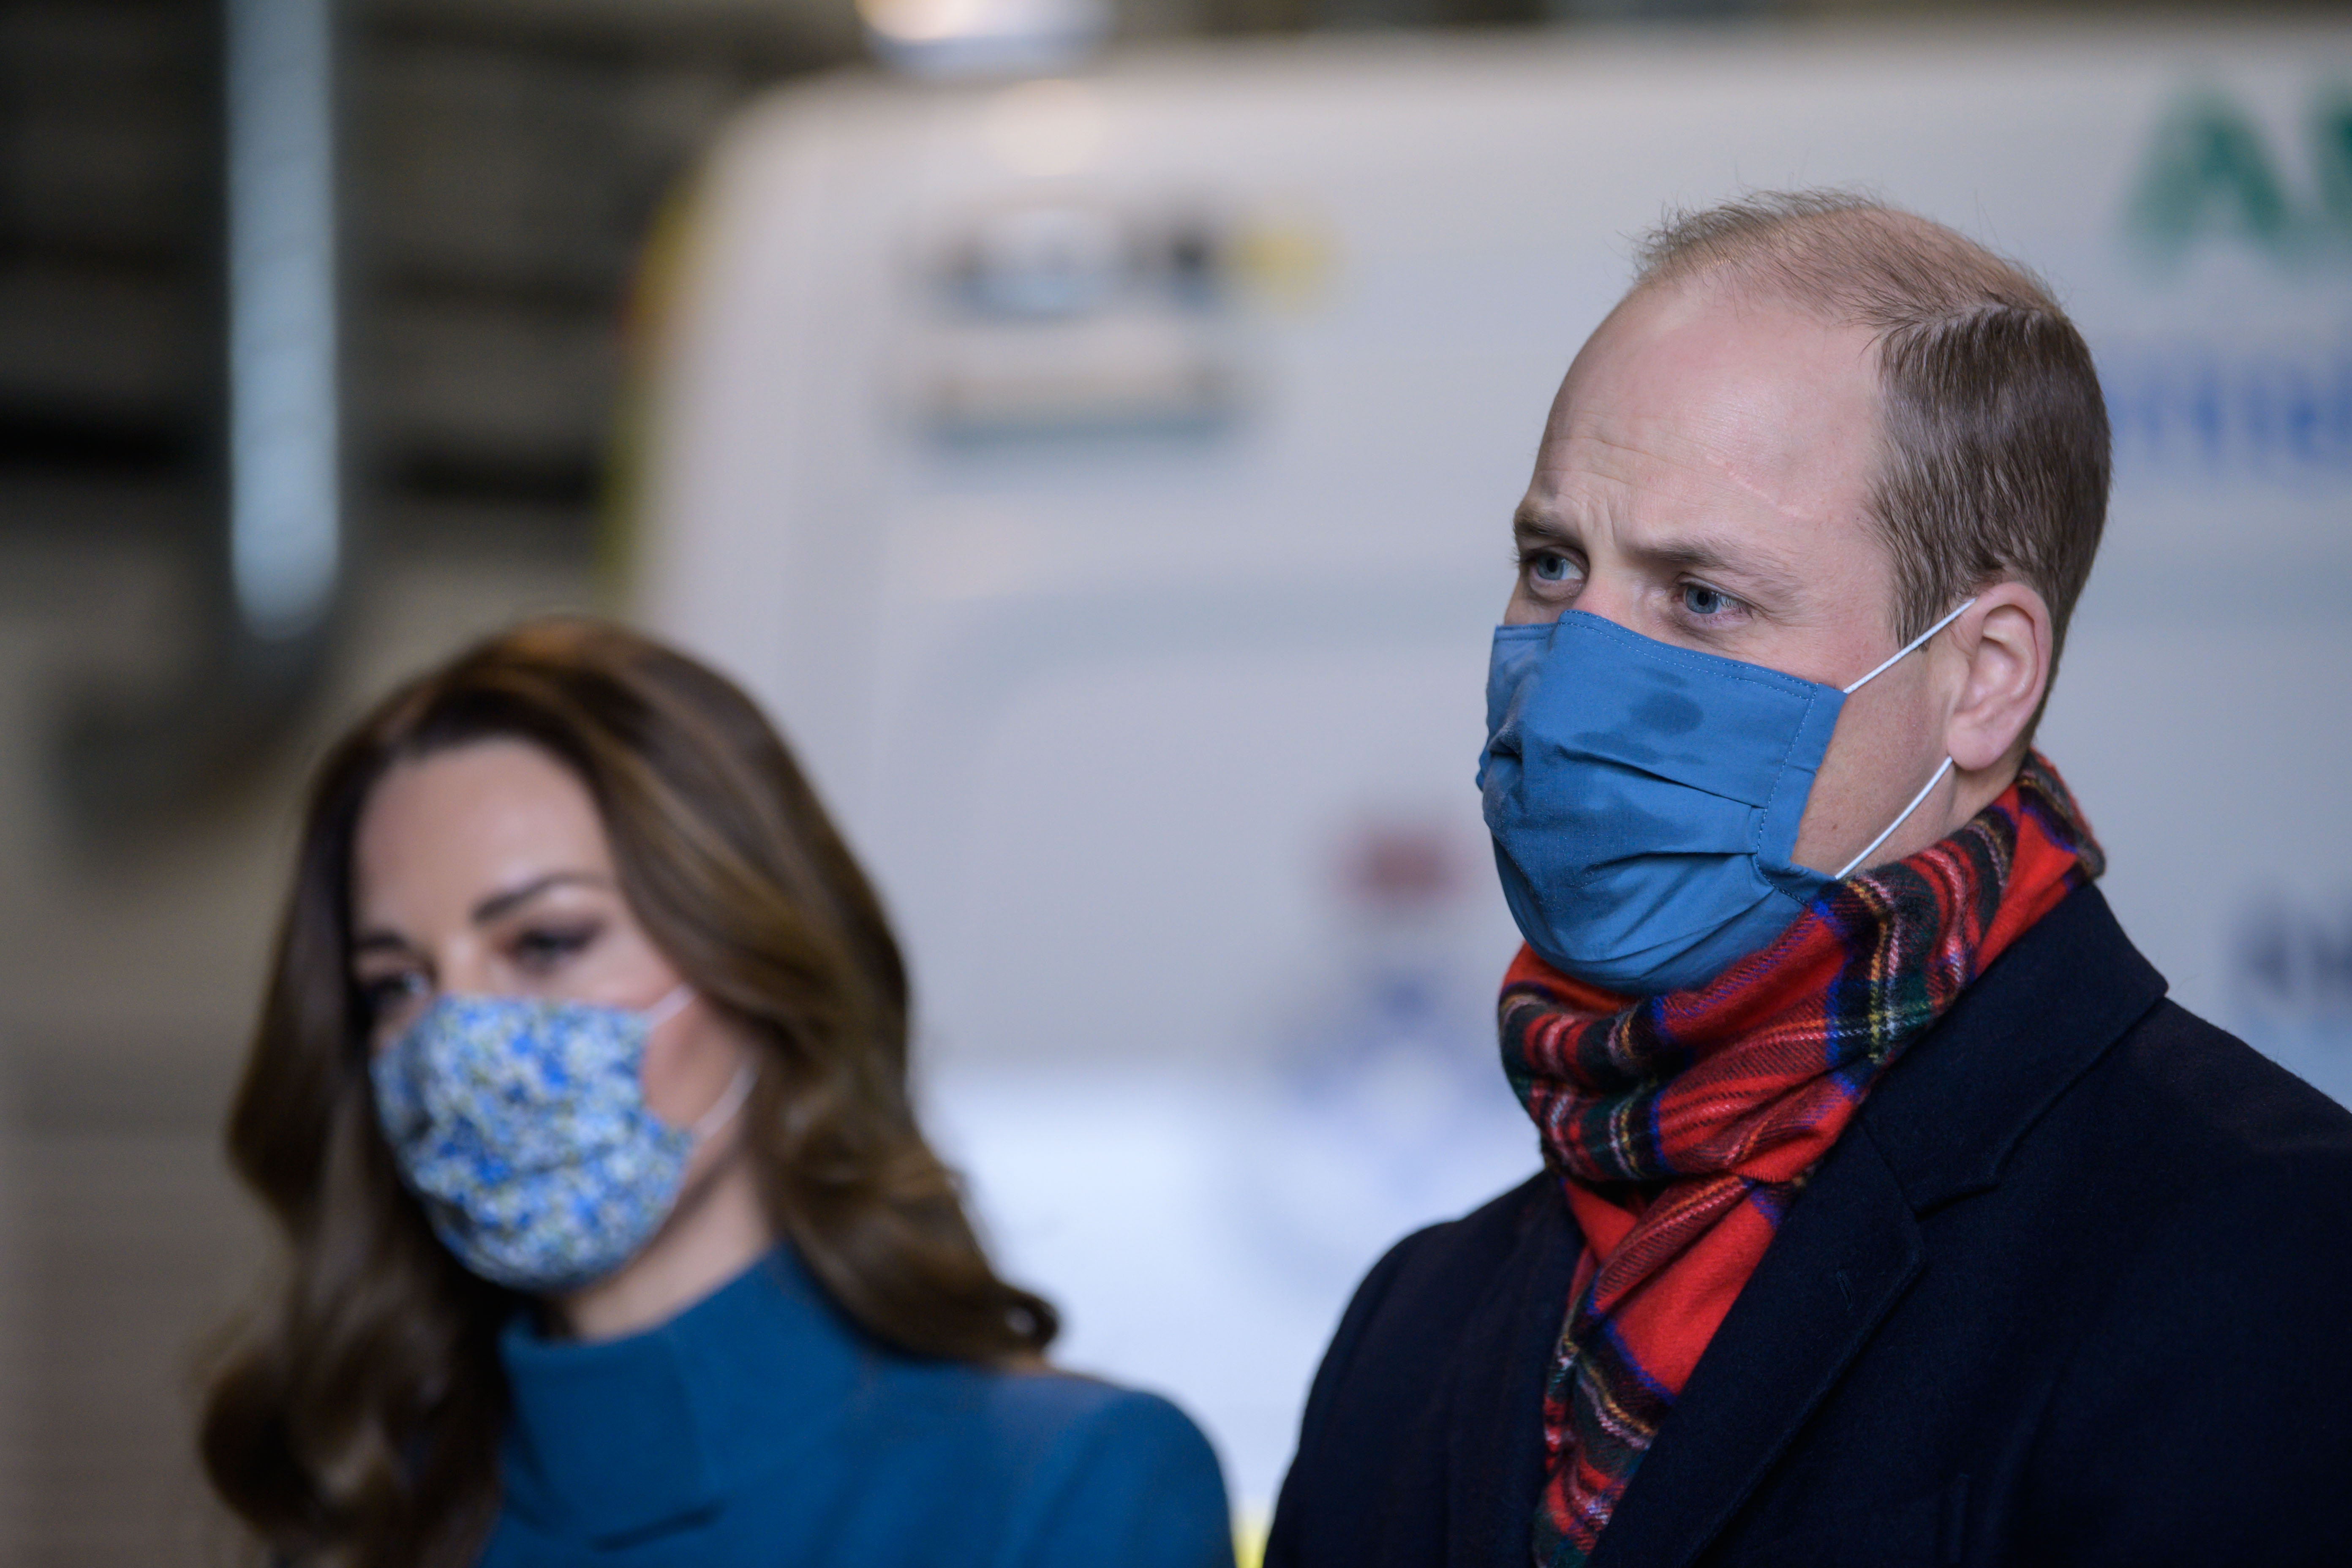 EDINBURGH, SCOTLAND - DECEMBER 07:  Prince William, Duke of Cambridge and Catherine, Duchess of Cambridge visit the Scottish Ambulance Service at Newbridge near Edinburgh as part of their working visits across the UK ahead of the Christmas holidays on December 7, 2020 in Edinburgh, Scotland, United Kingdom. During the tour William and Kate will visit communities, outstanding individuals and key workers to thank them for their efforts during the coronavirus pandemic. (Photo by Wattie Cheung - WPA Pool/Getty Images)